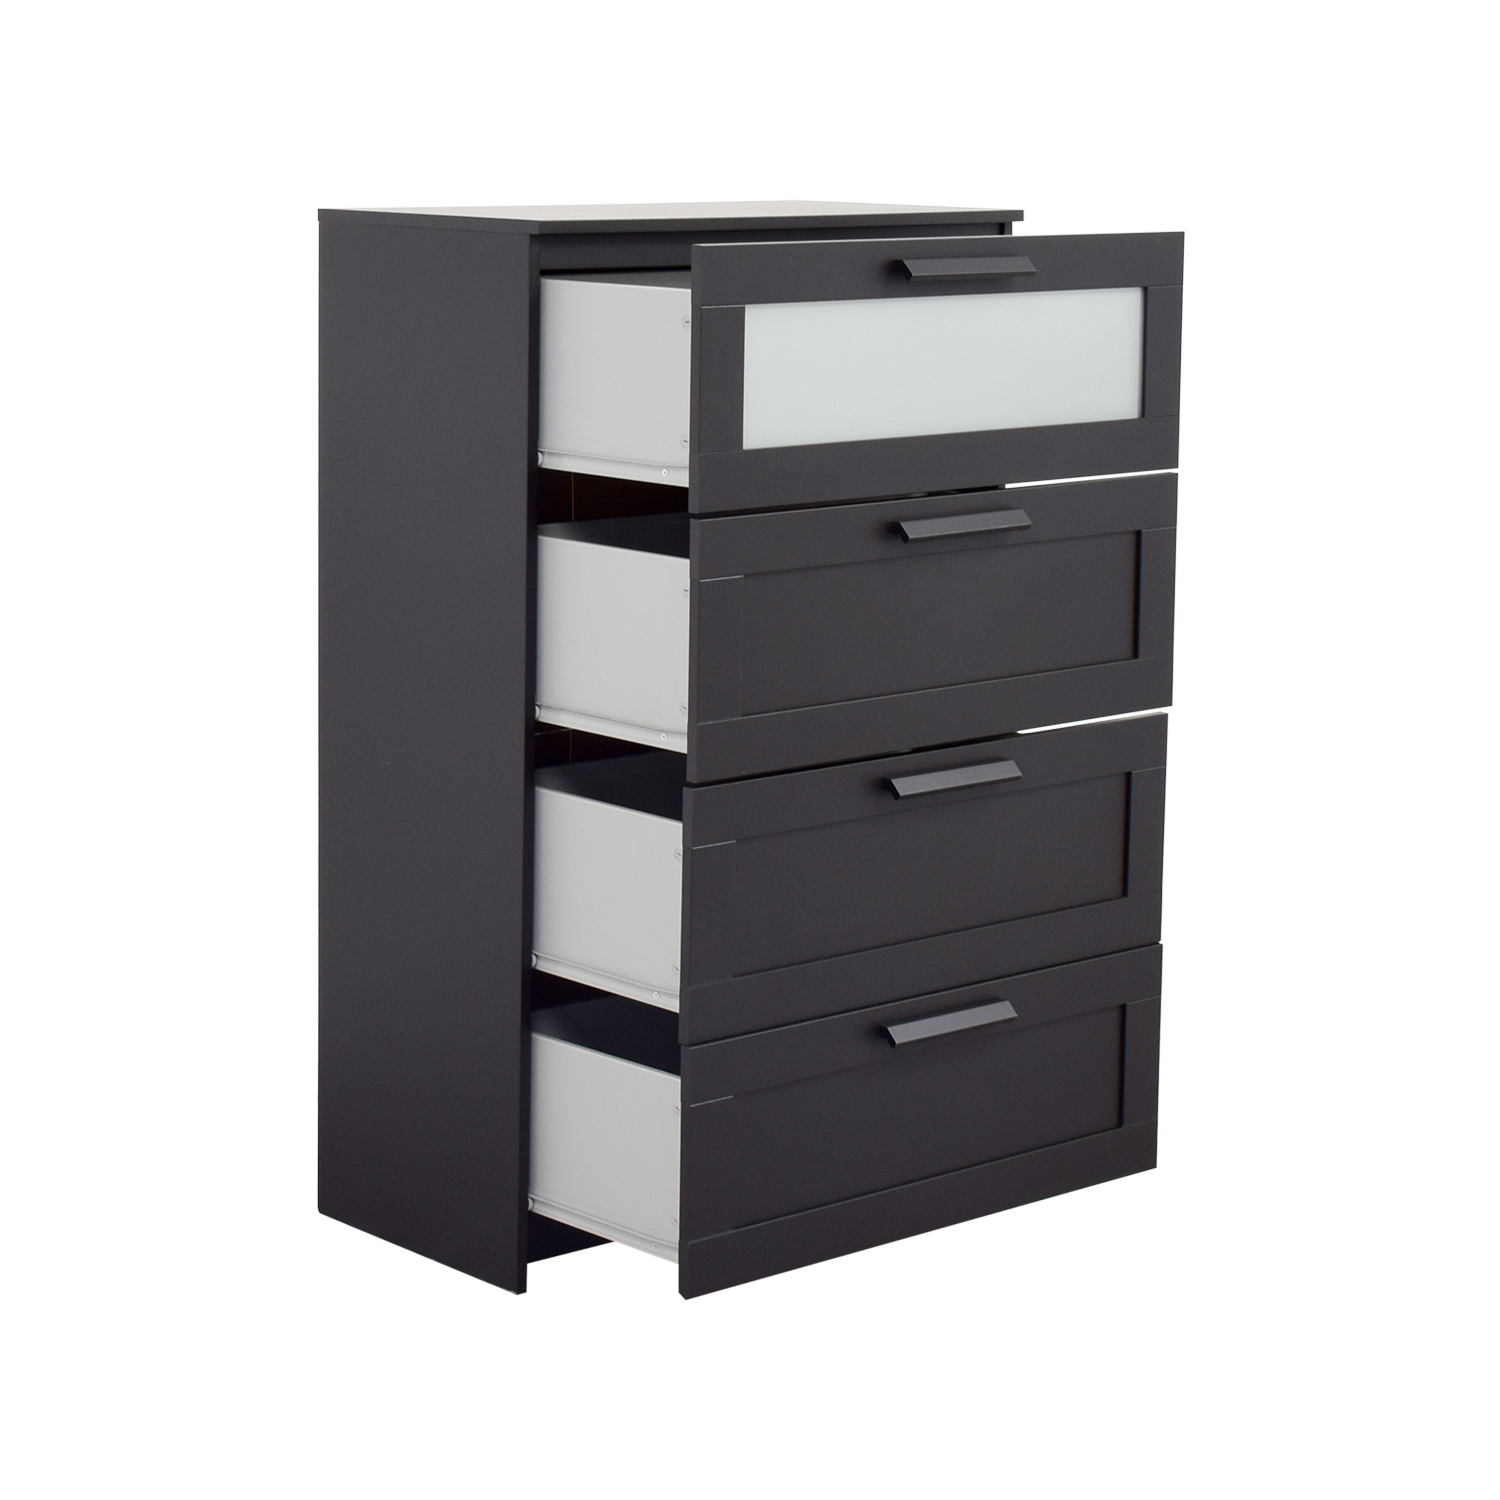 38 off ikea ikea brimnes four drawer dresser storage. Black Bedroom Furniture Sets. Home Design Ideas